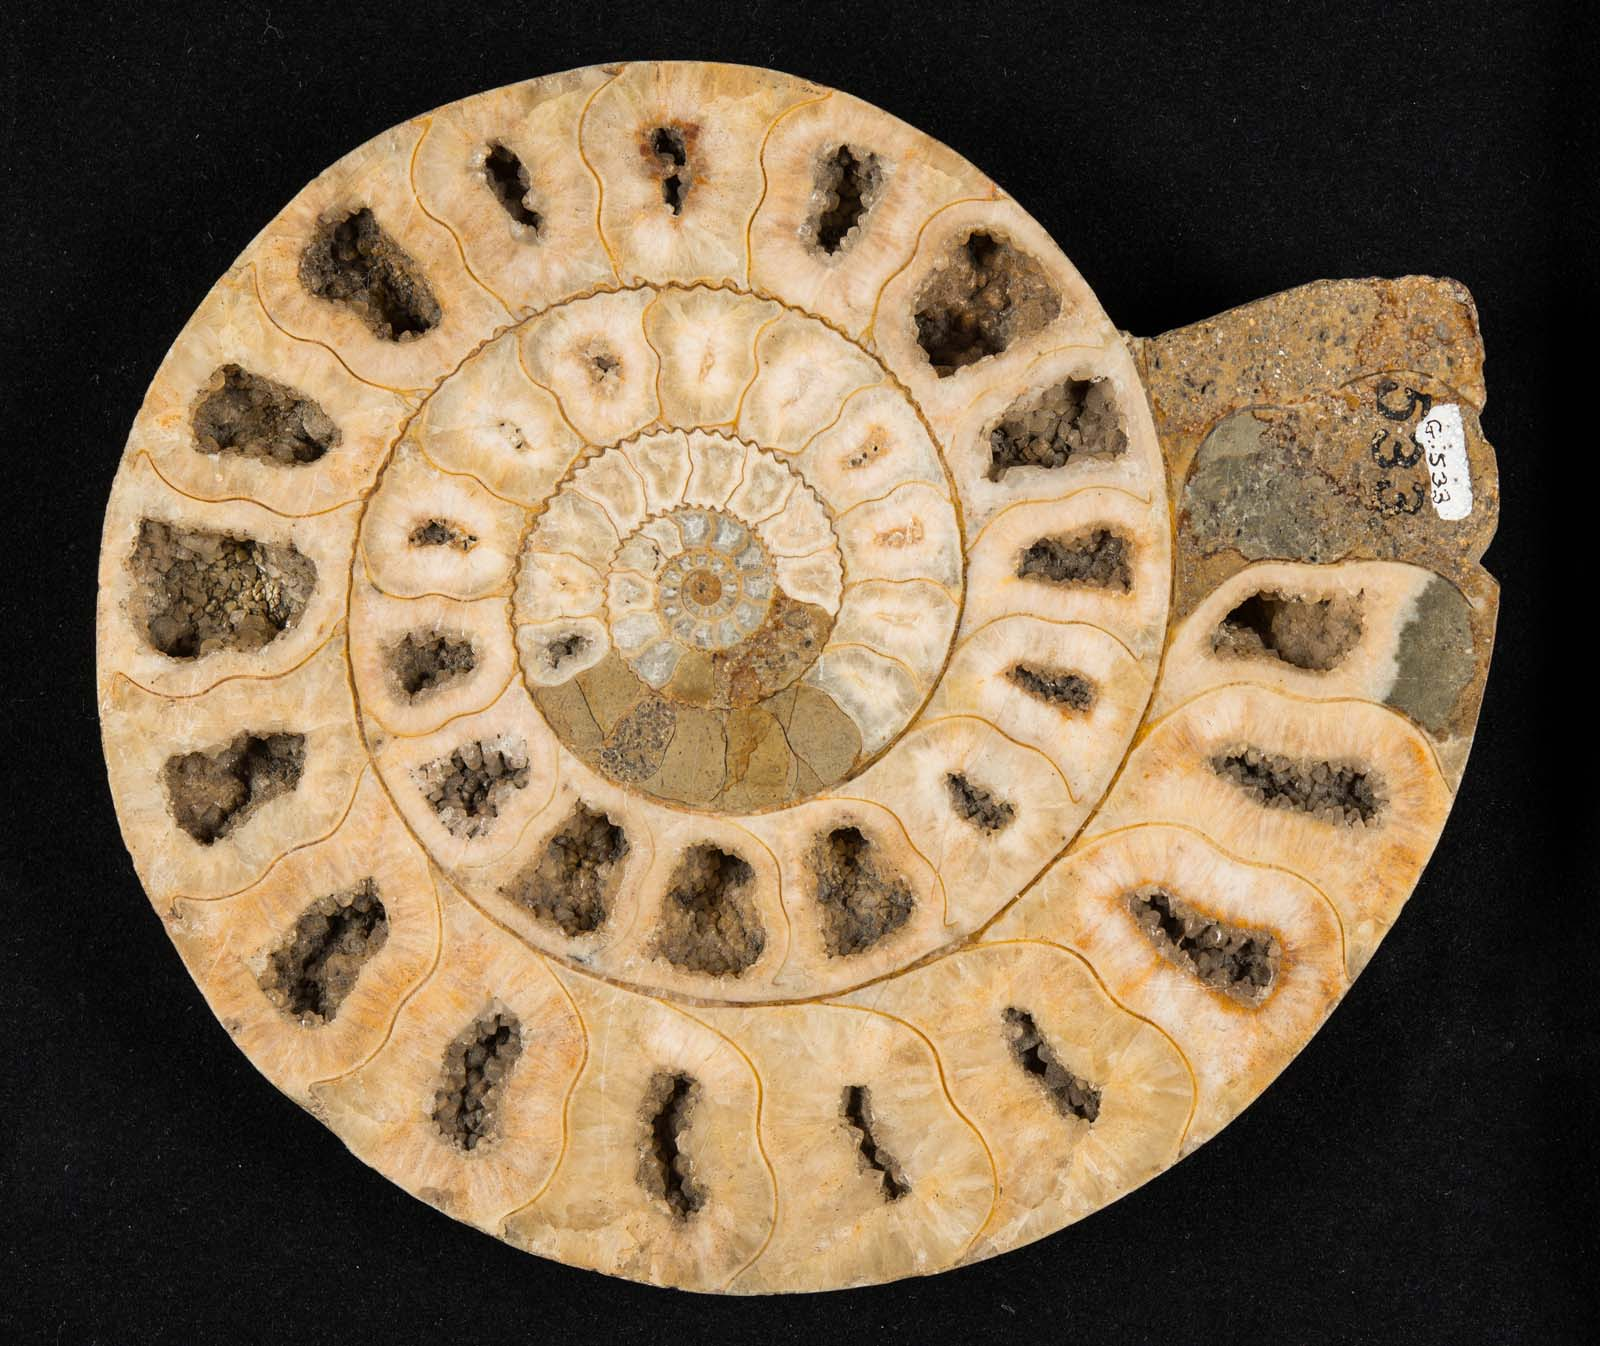 photo of an ammonite fossil